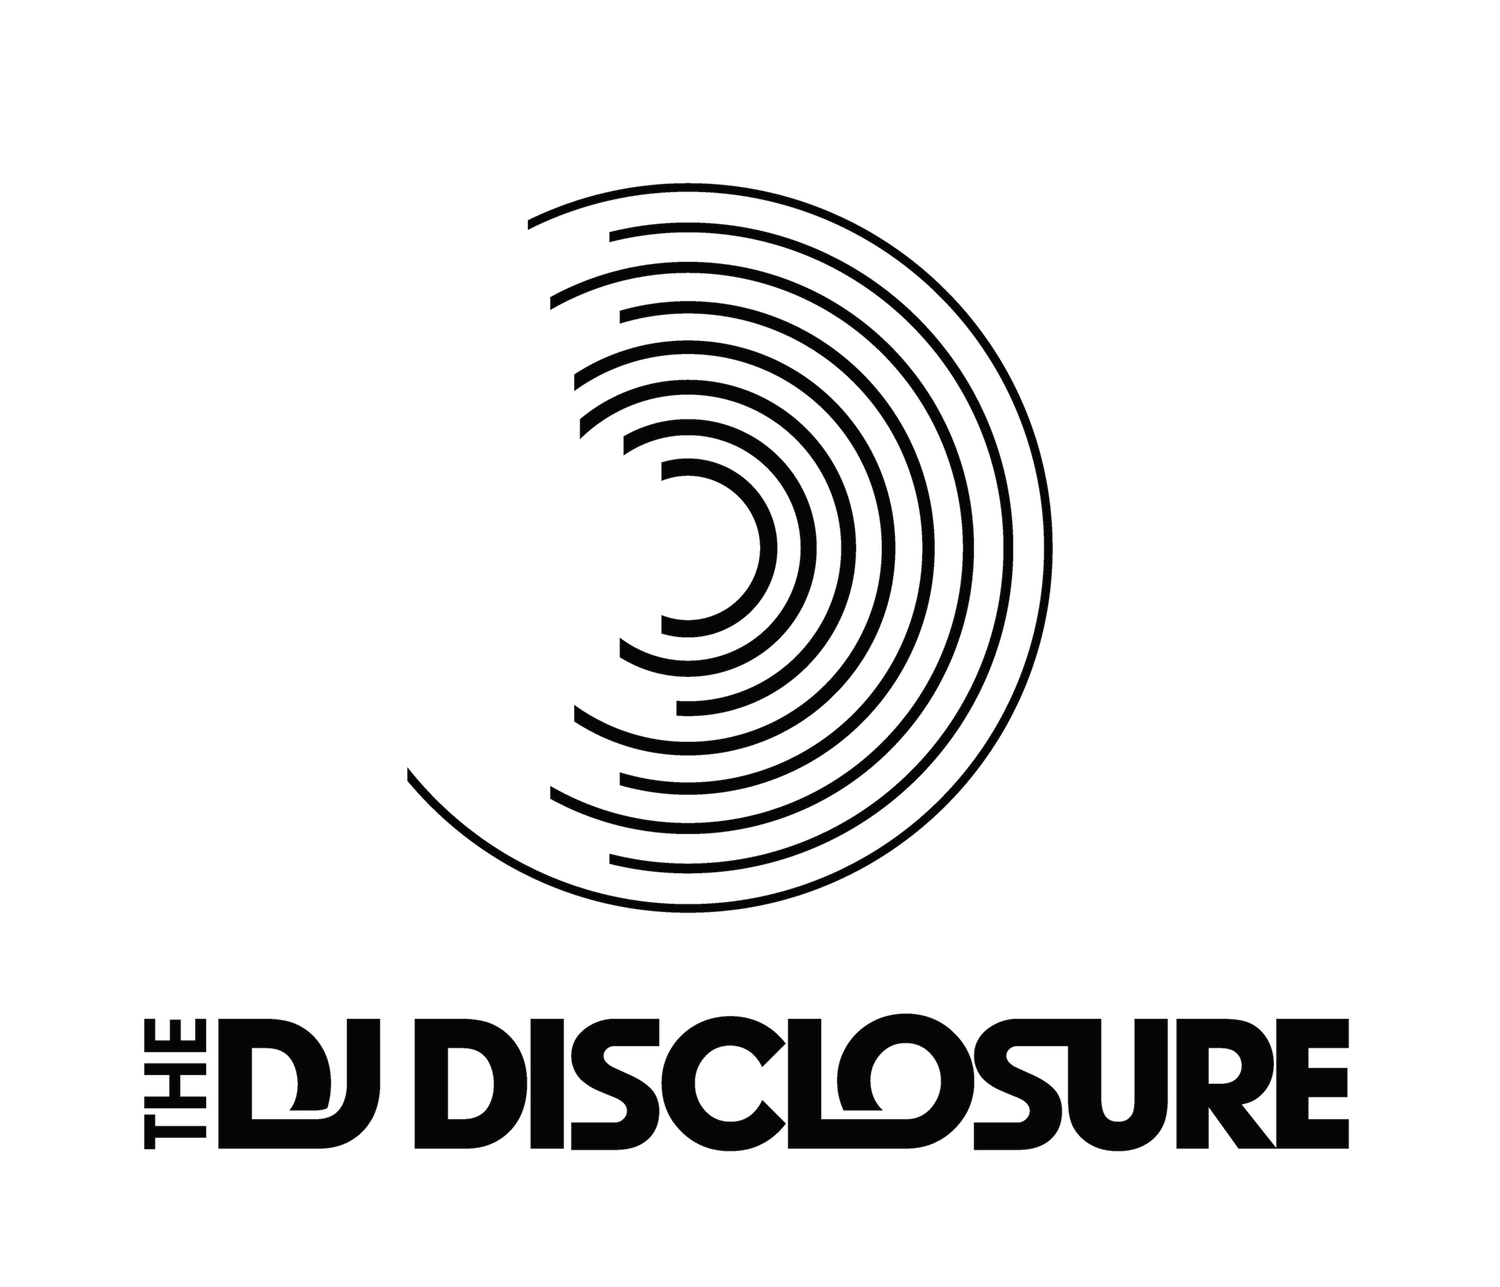 The DJ Disclosure